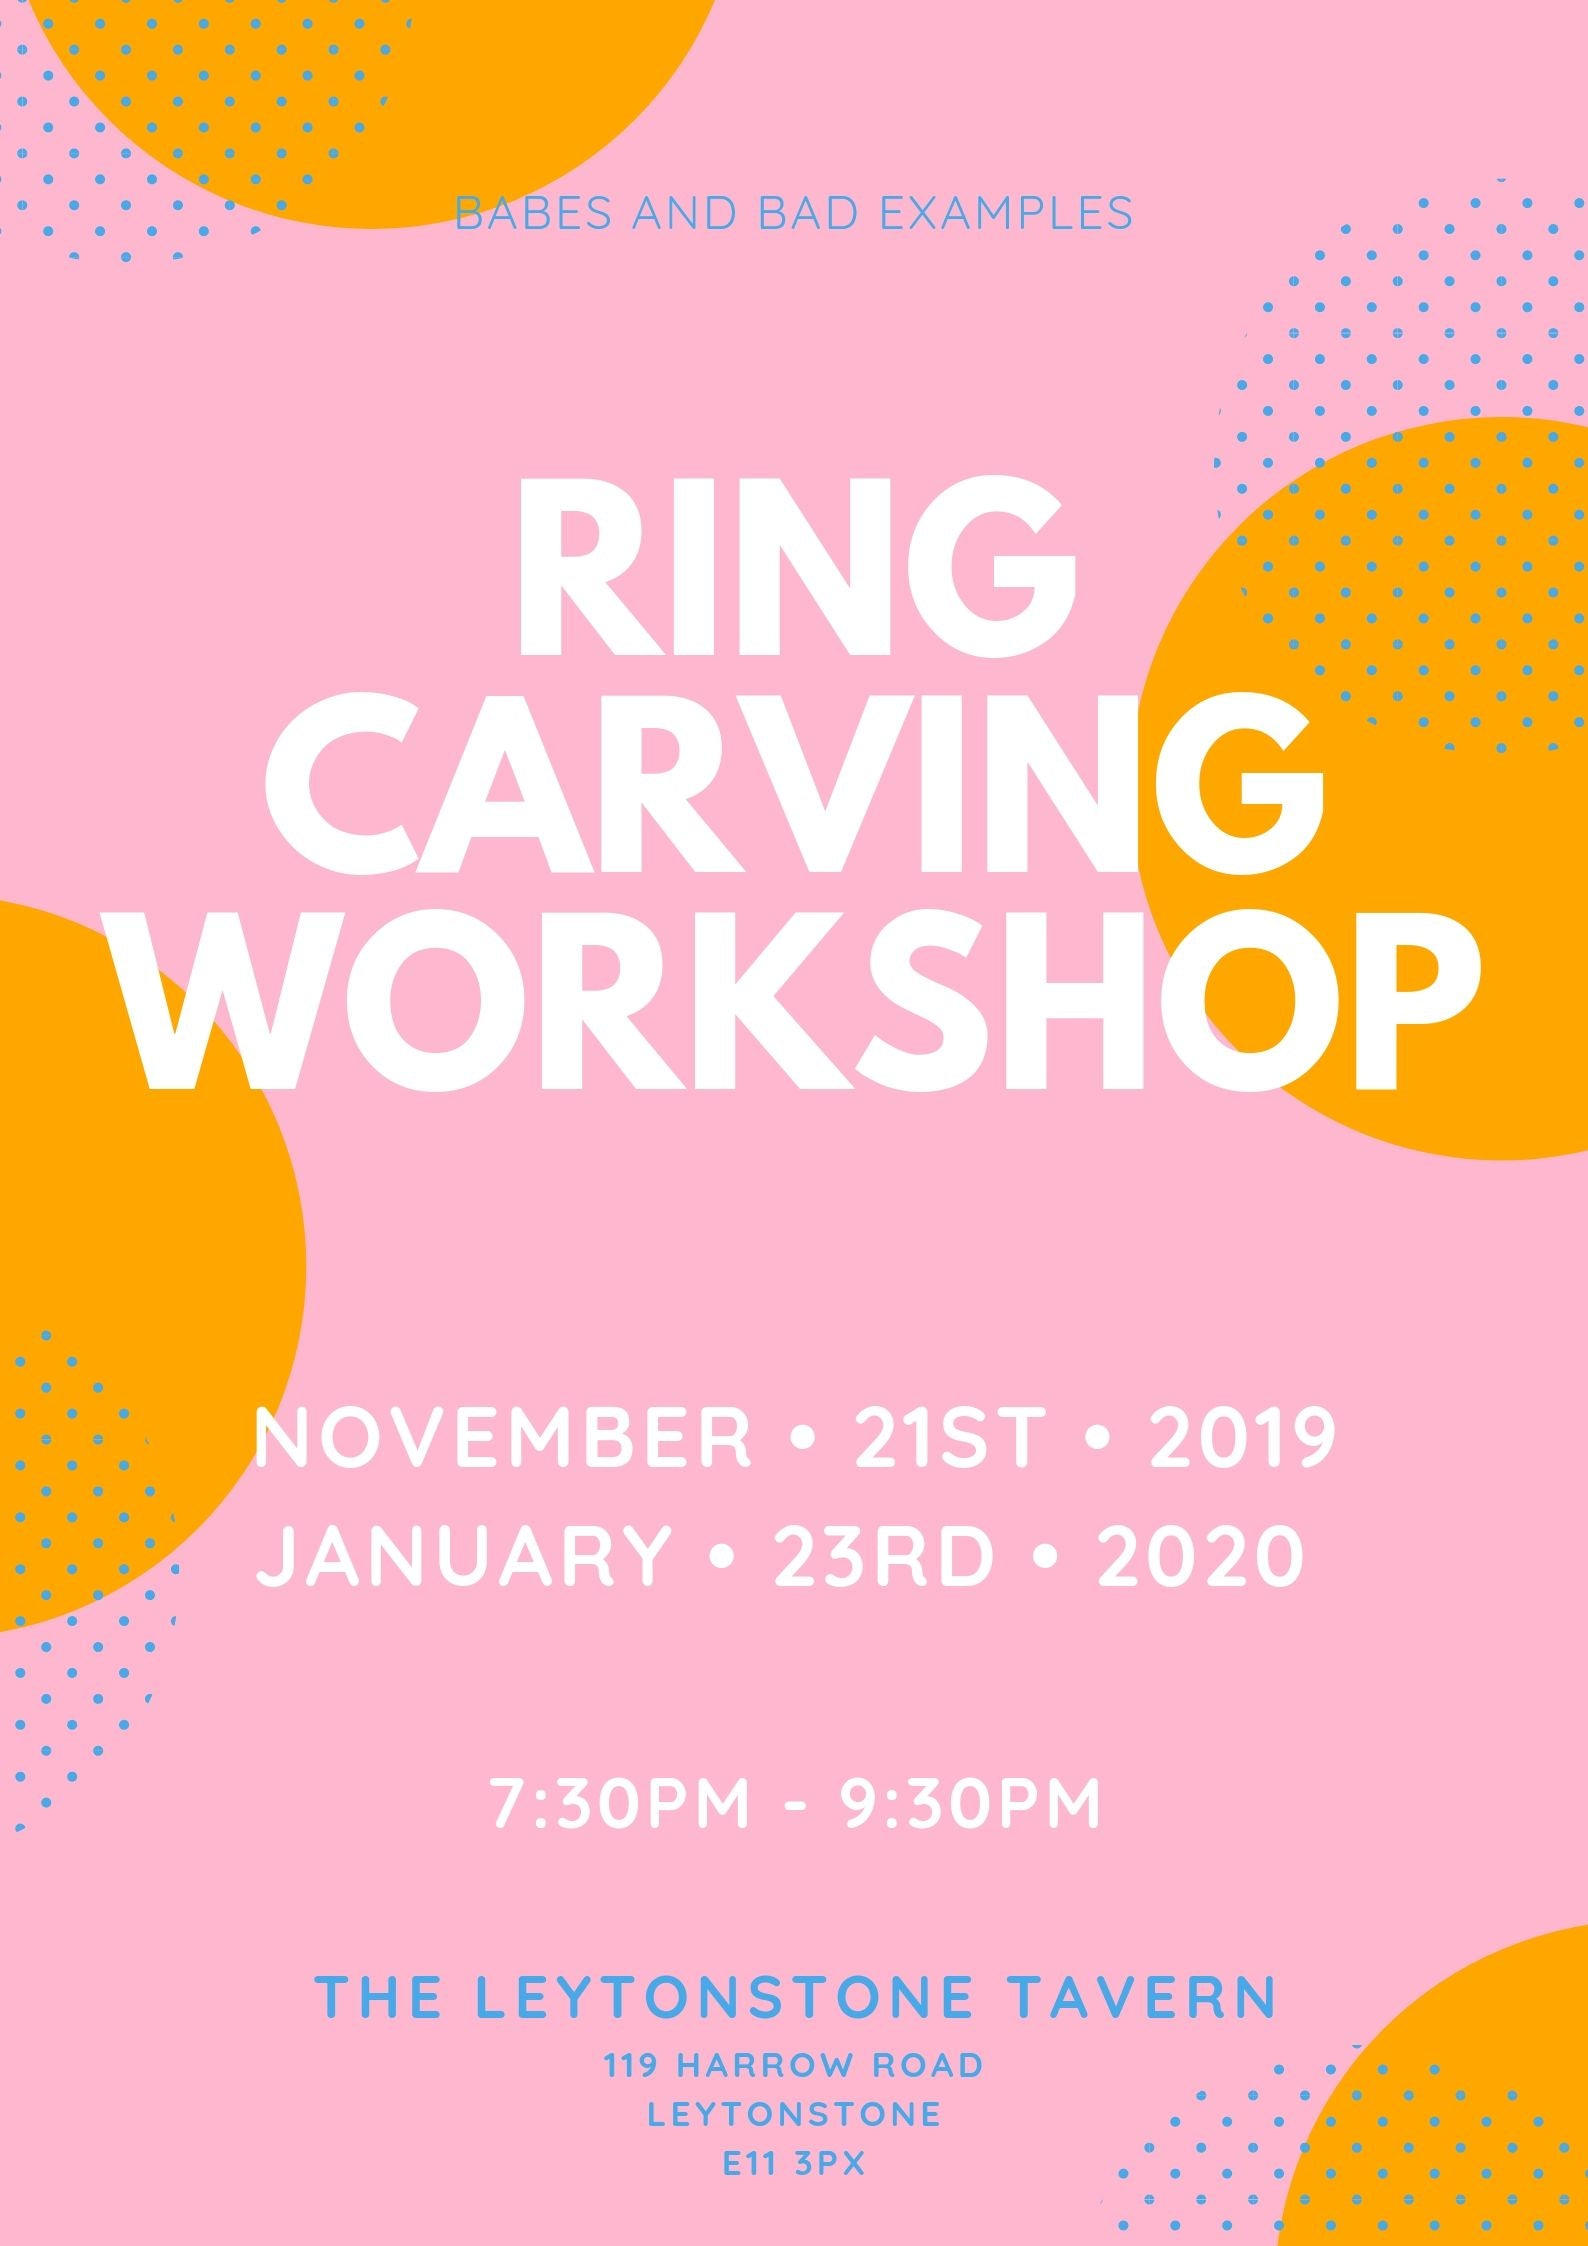 Silver Ring Carving Workshop from Jewellers Wax November 23rd 2019 The Leytonstone Tavern